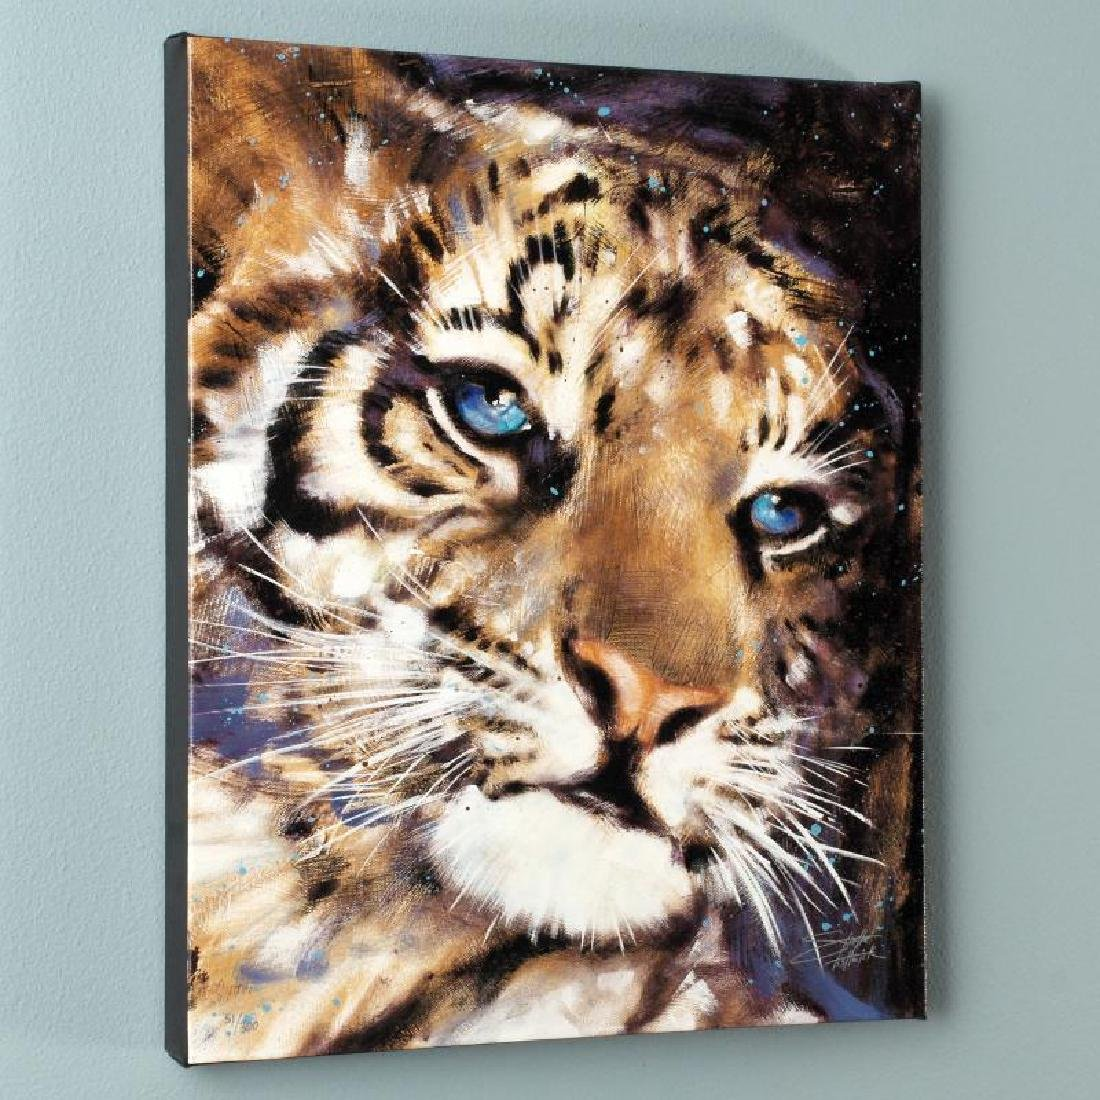 """Cub"" LIMITED EDITION Giclee on Canvas by Stephen"